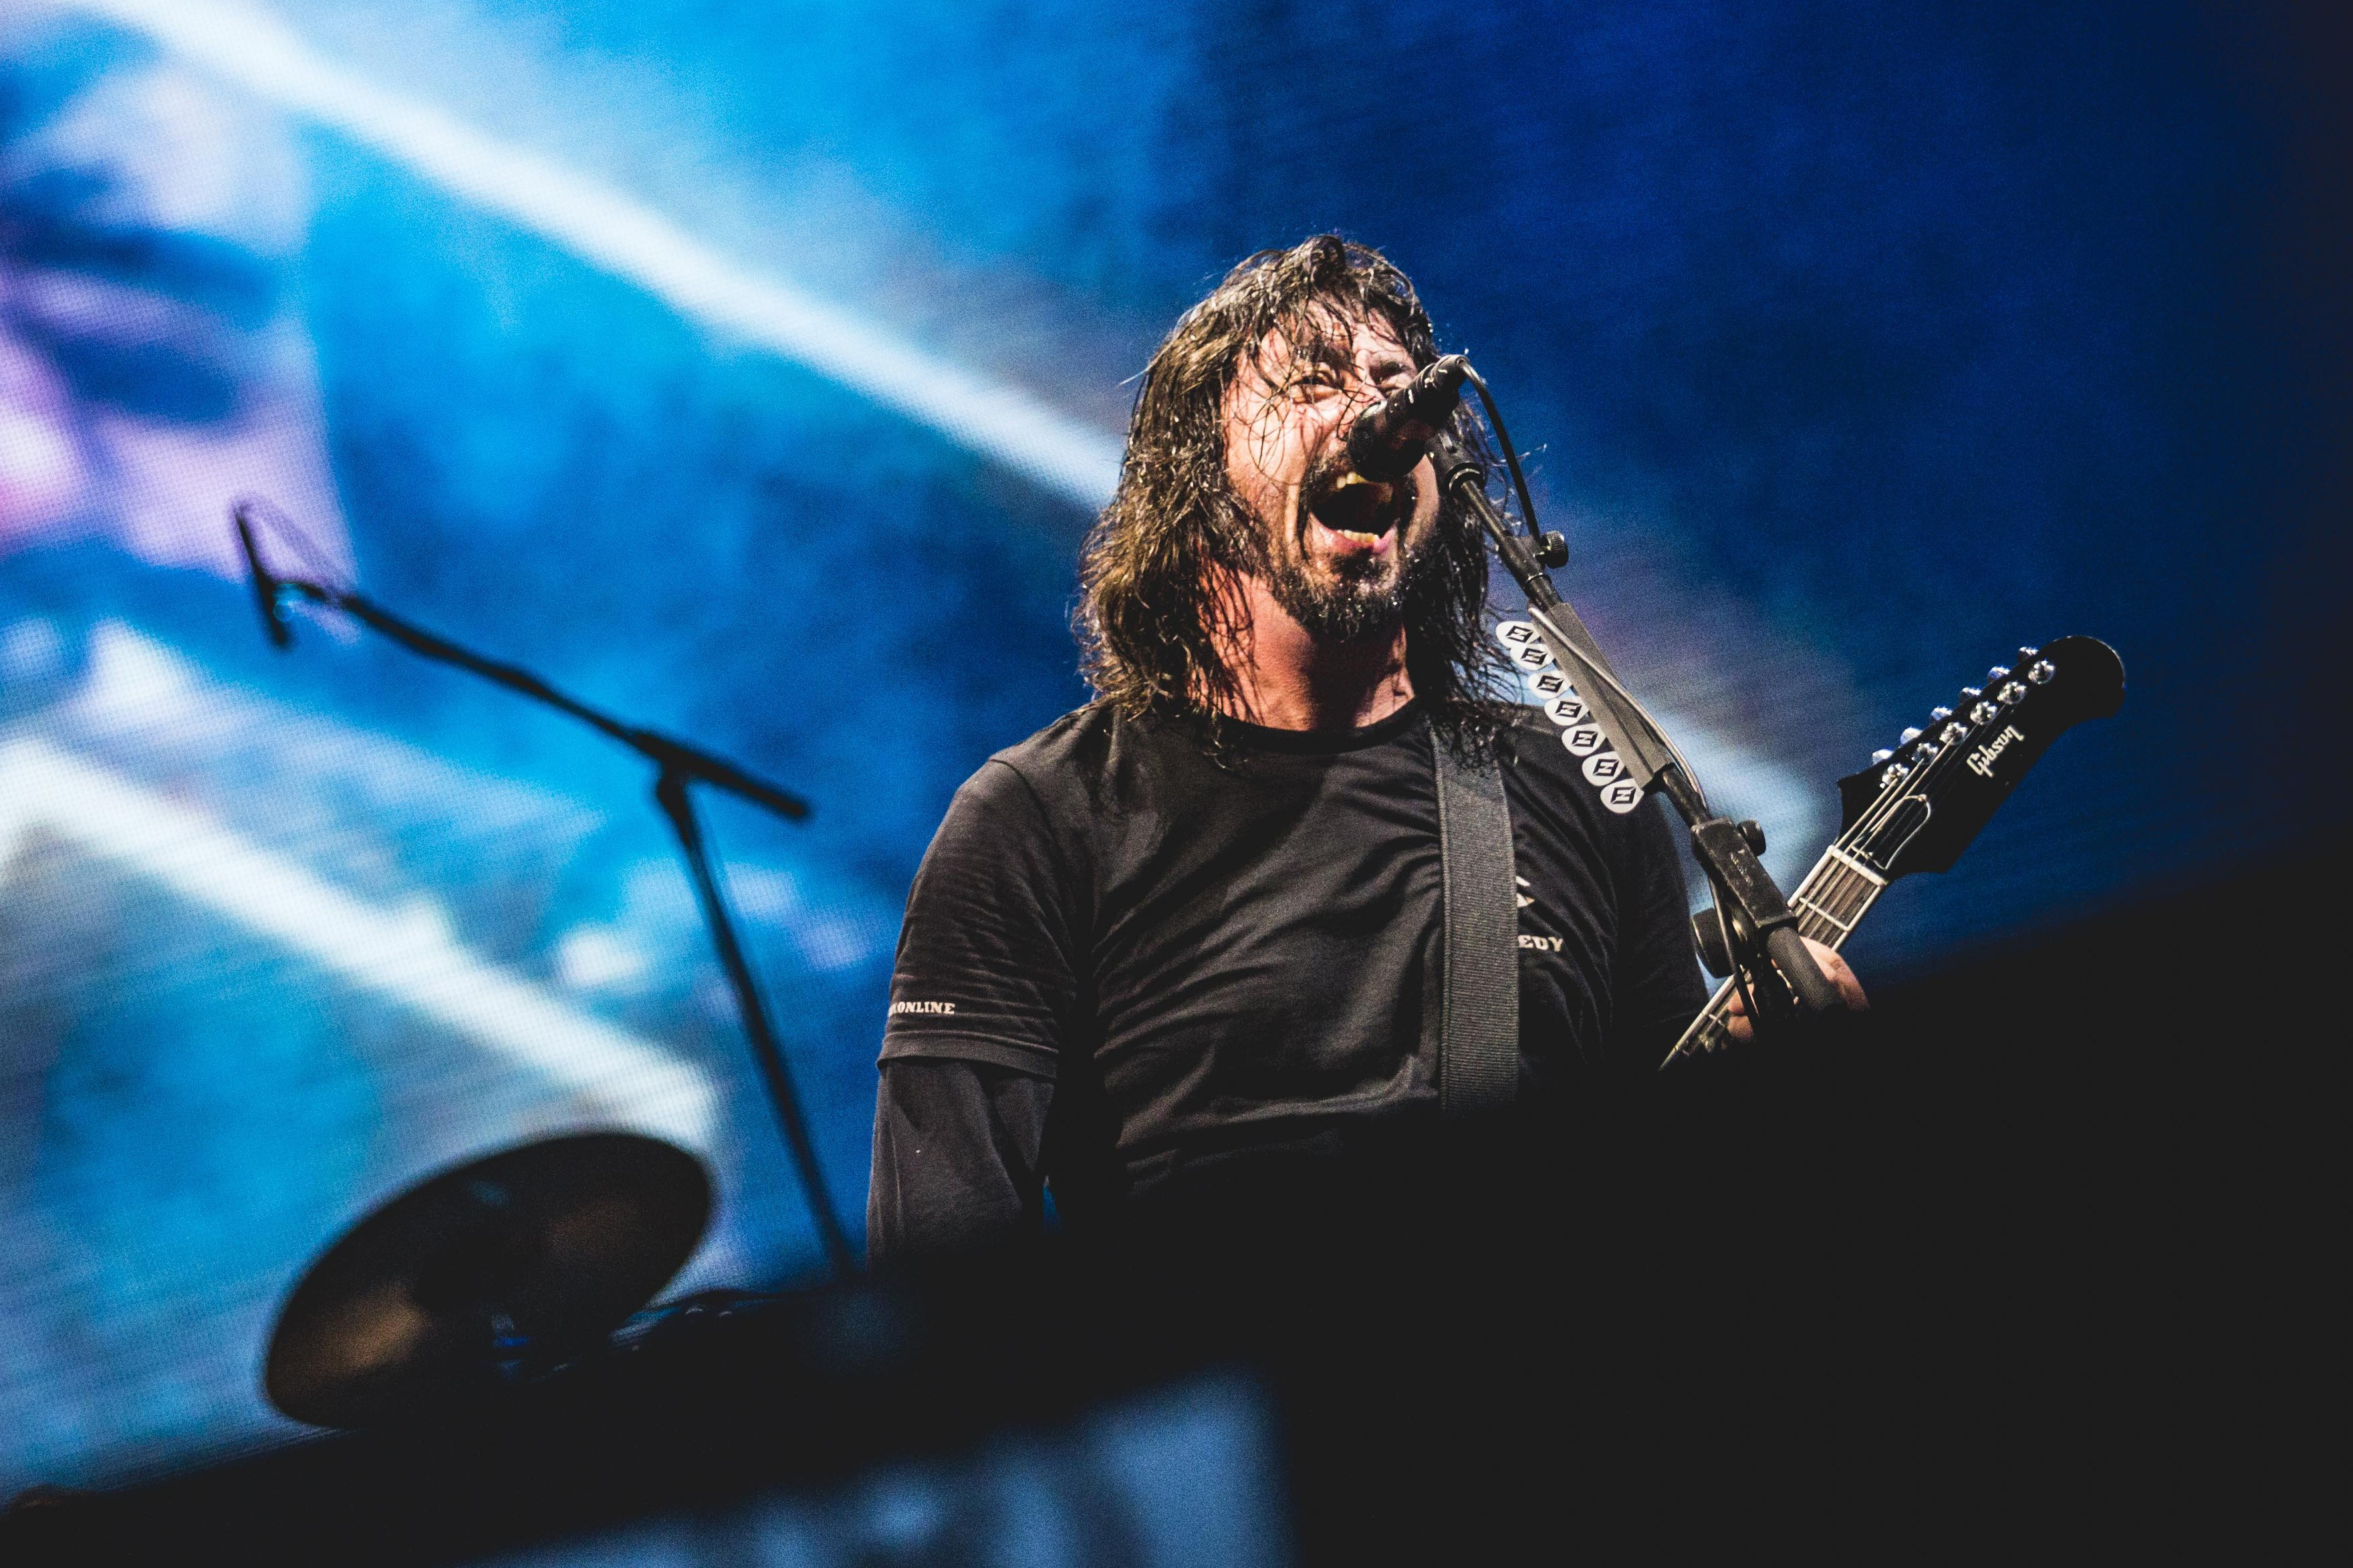 foo-fighters-surprise-00950025-live-ep-tell-us-your-story-fan-initiative